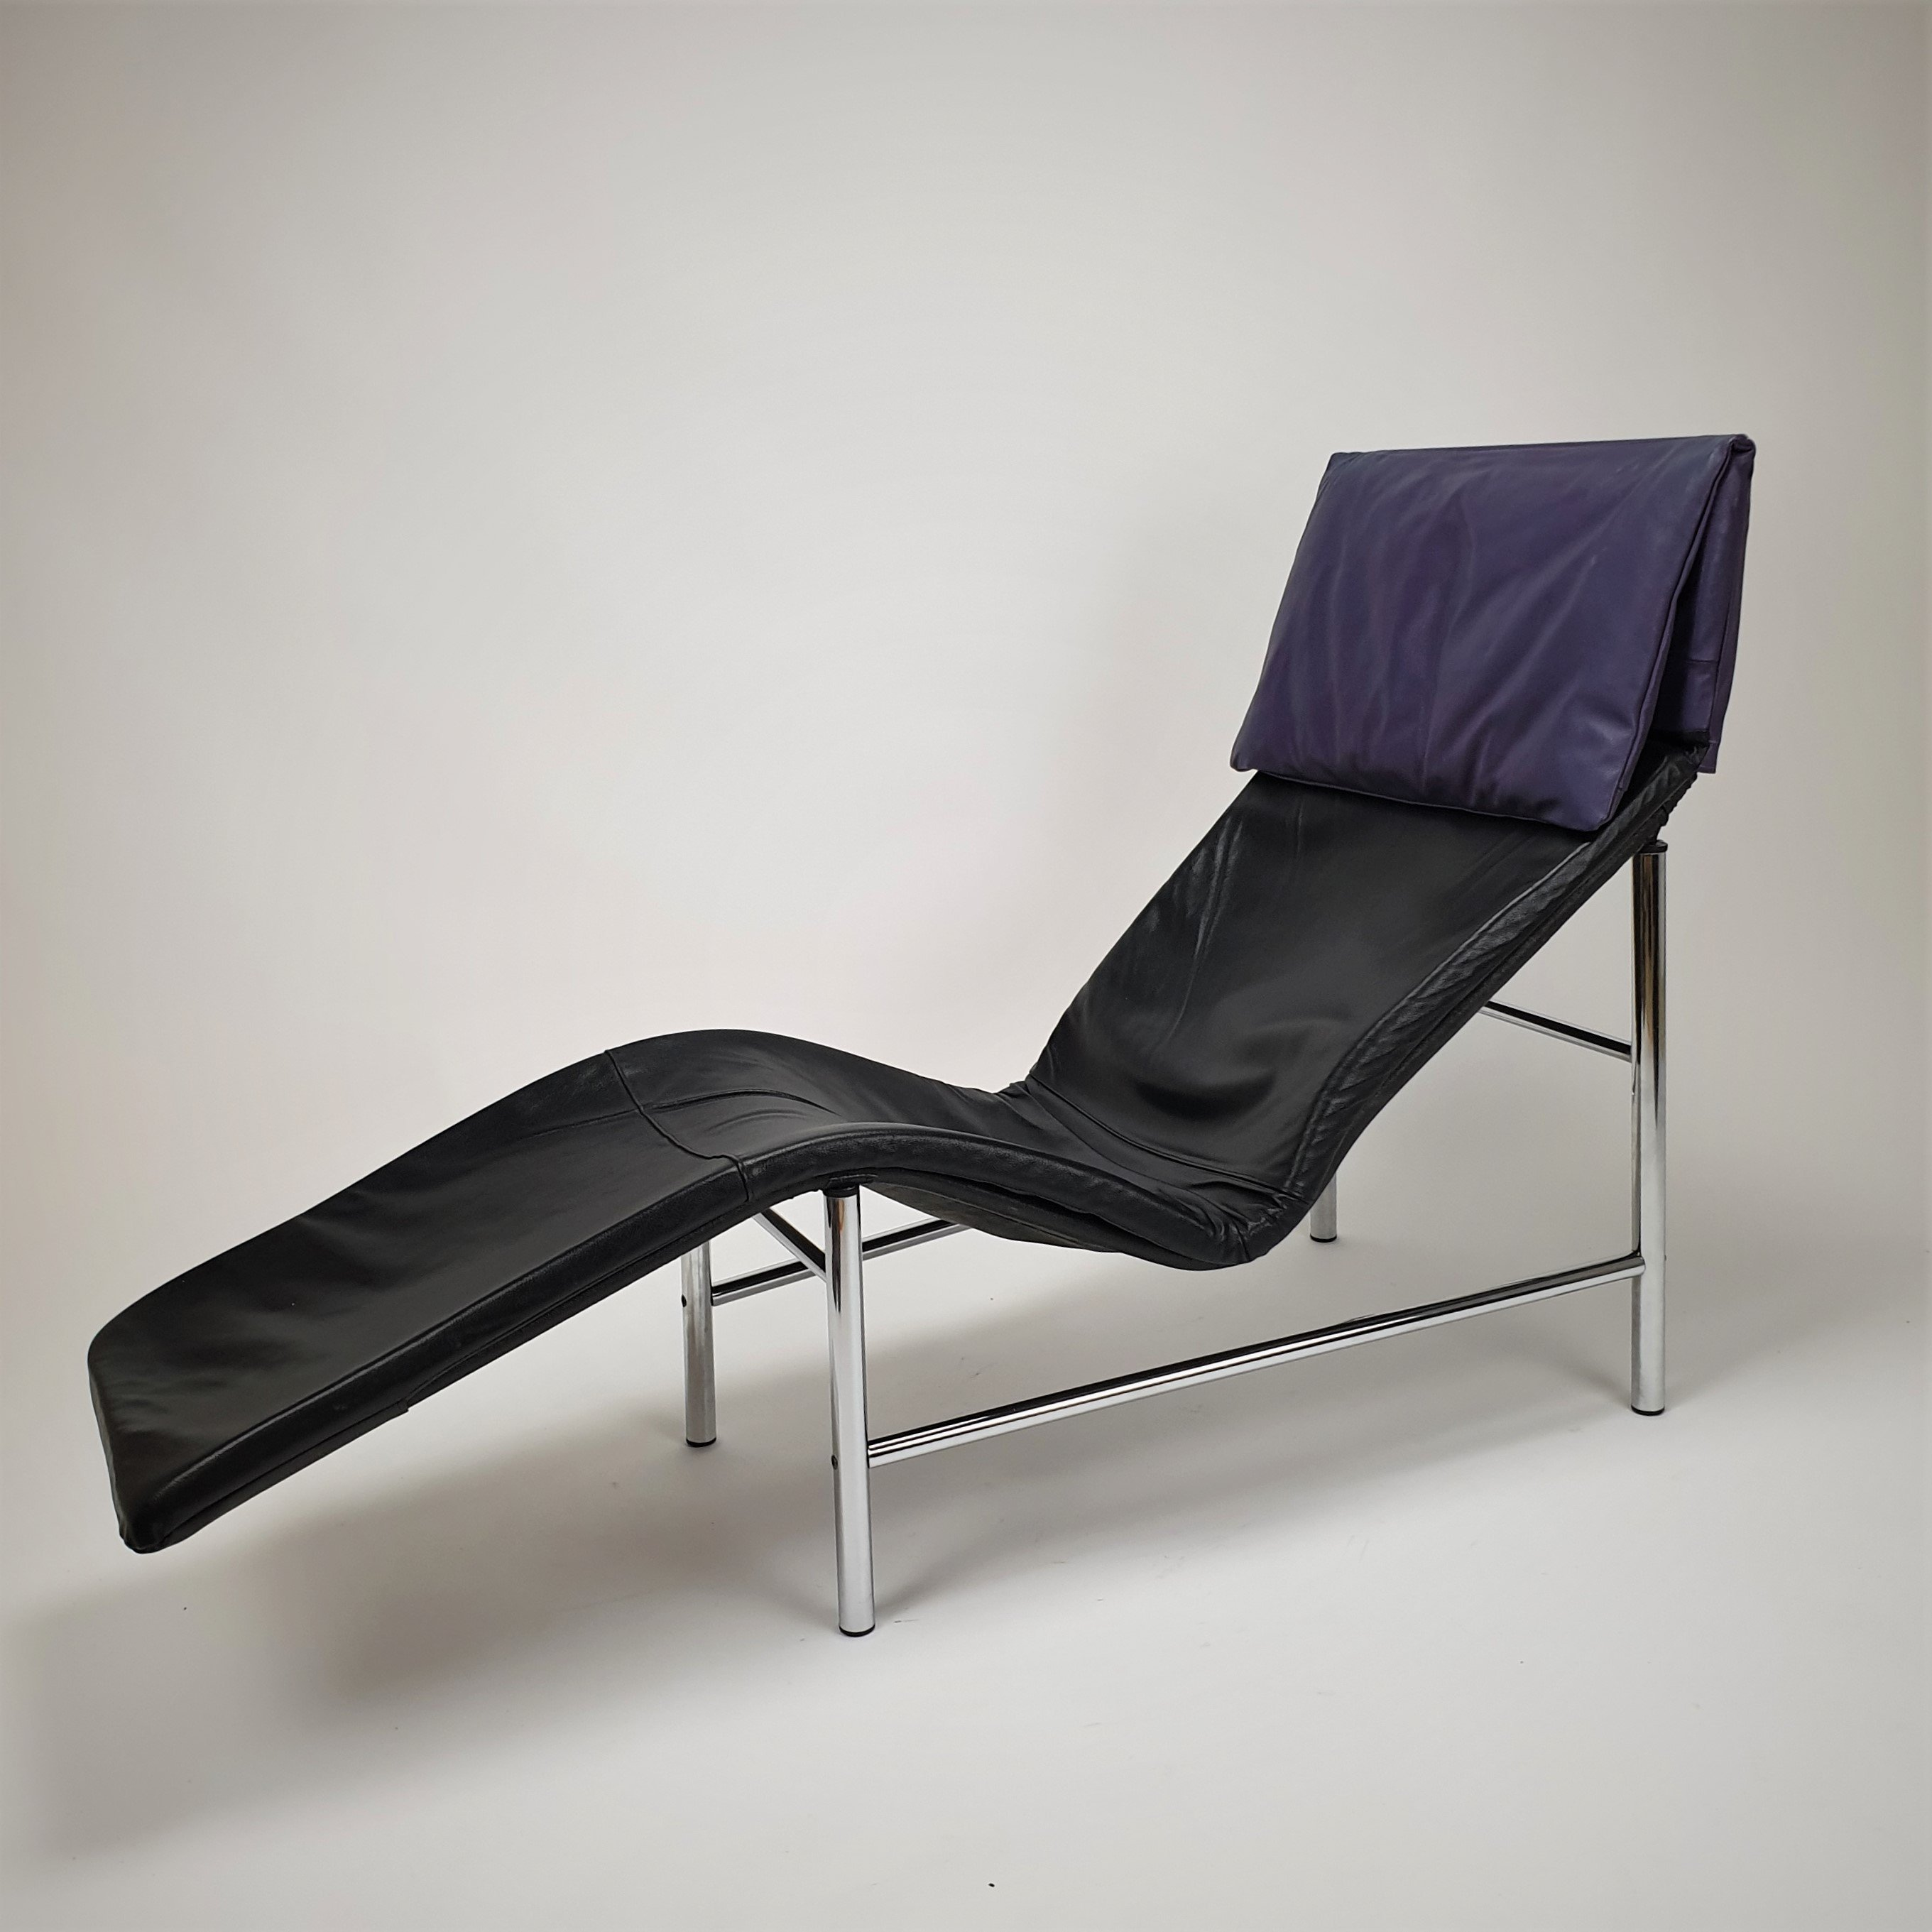 Tord Bjorklund Skye Chaise Lounge For Ikea 1990s 142968